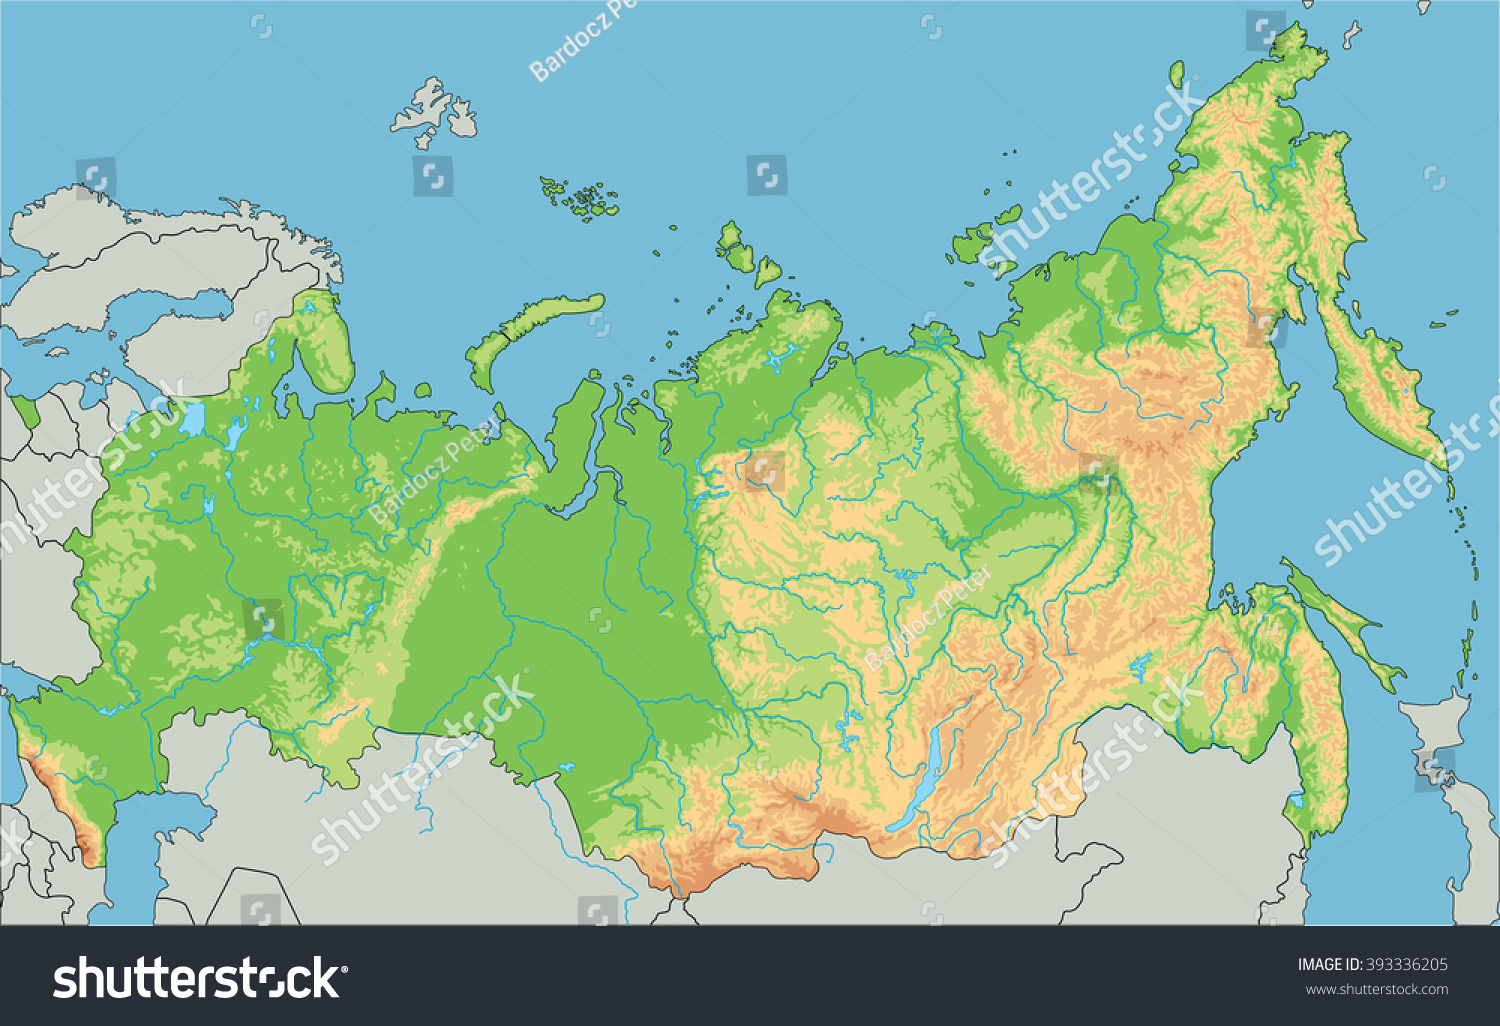 High Detailed Russia Physical Map Stock Vector